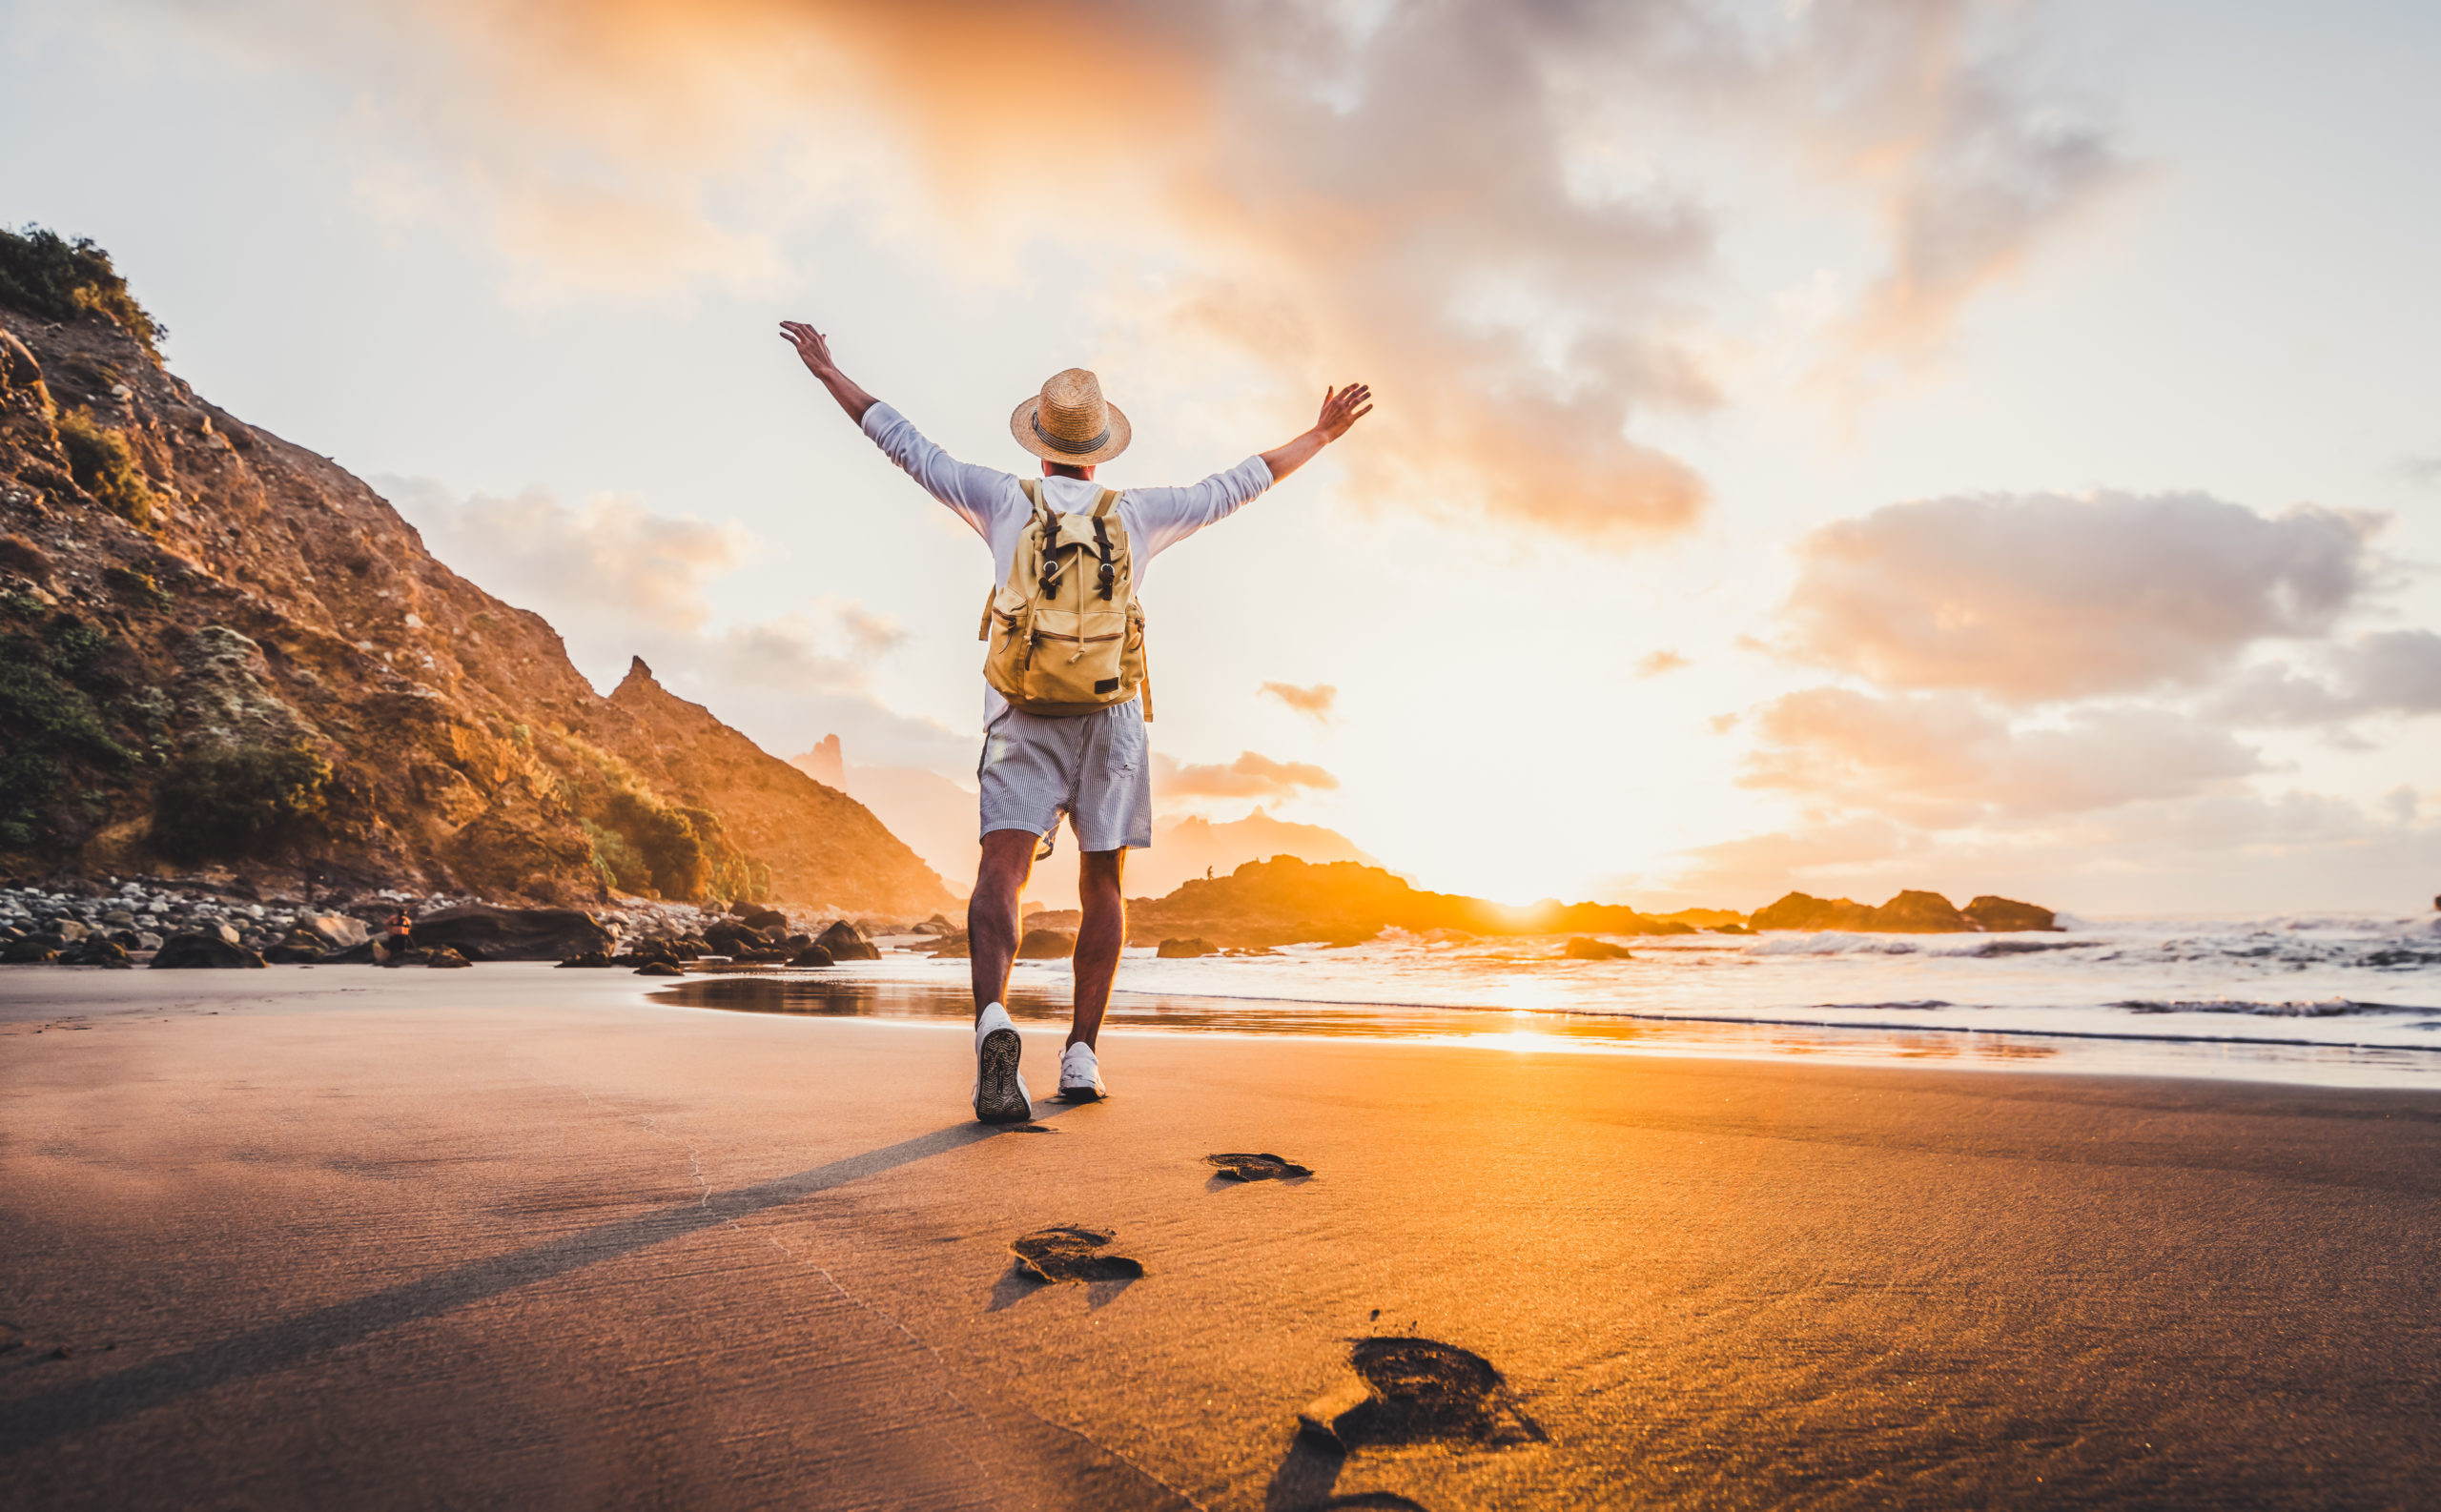 young-man-arms-outstretched-by-sea-sunrise-enjoying-freedom-life-people-travel-wellbeing-concept